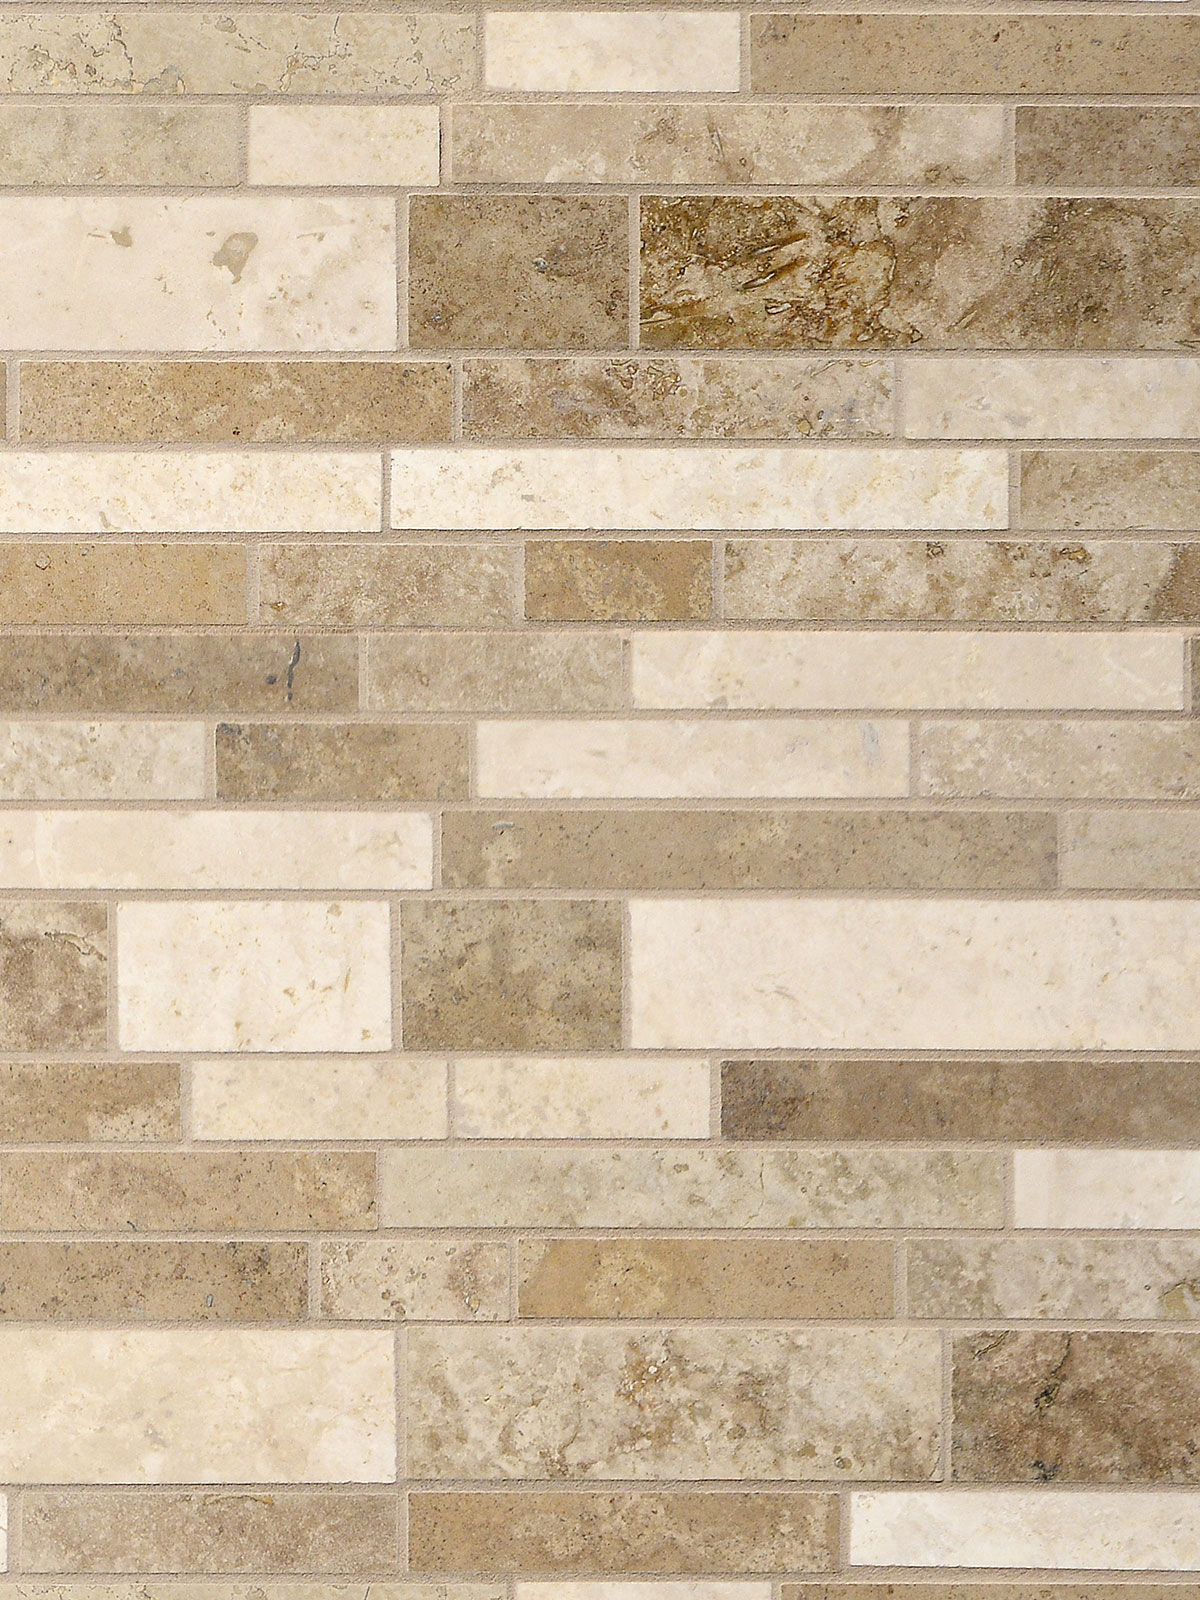 Brown beige travertine subway mosaic backsplash tile 1 BA1024